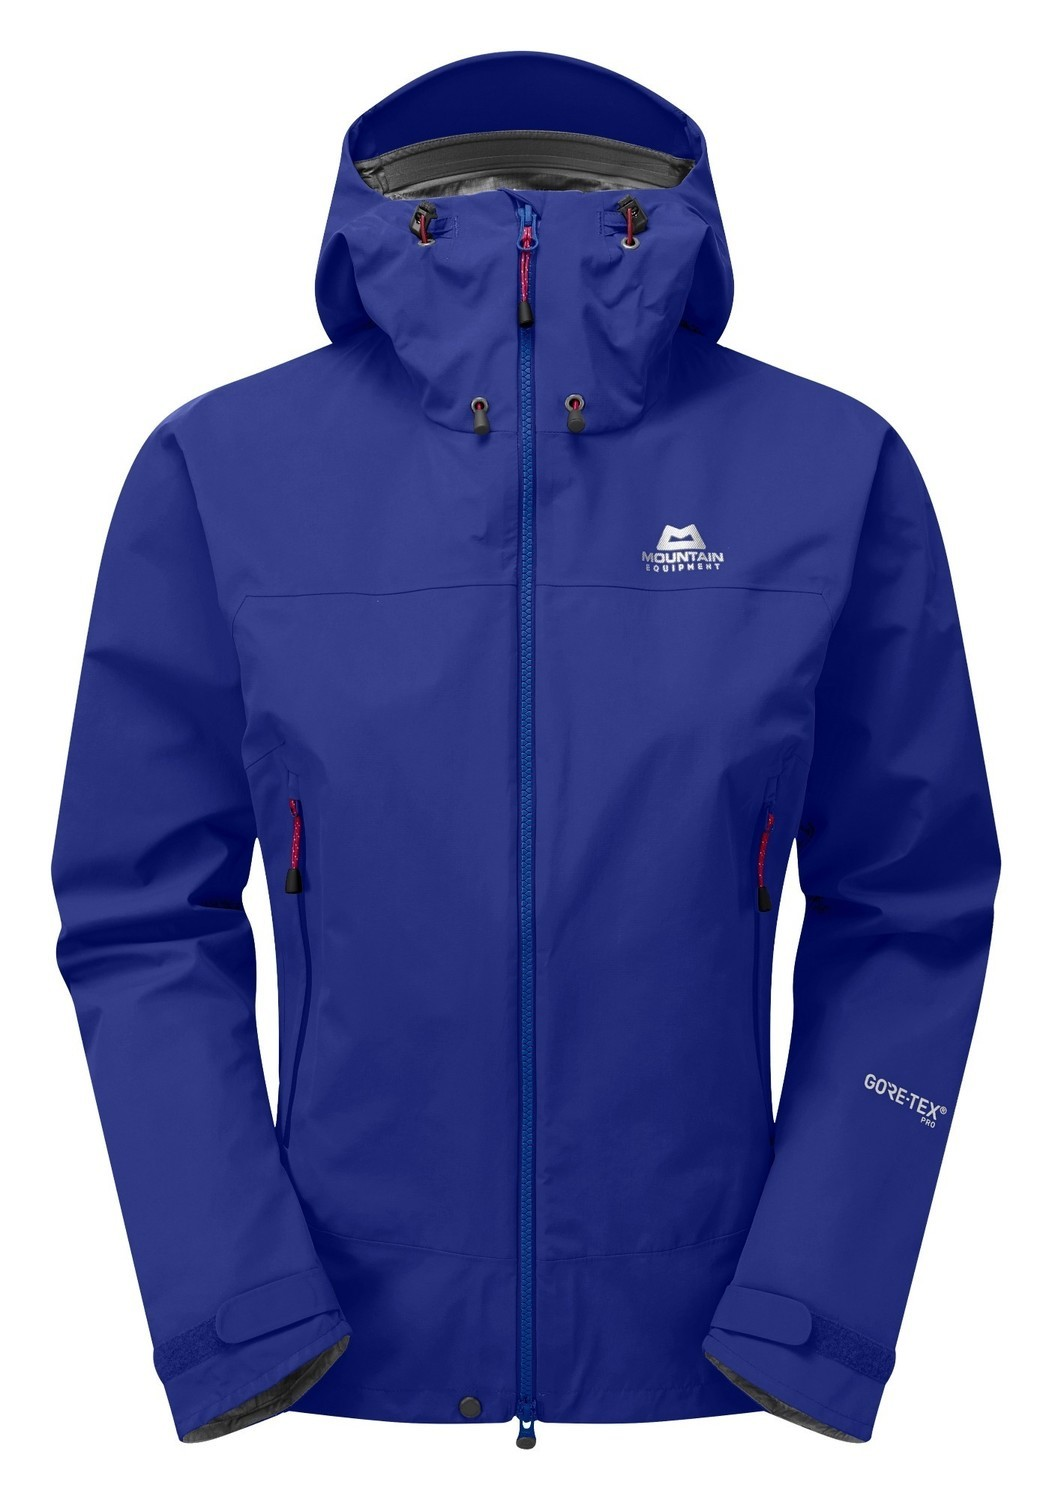 MOUNTAIN EQUIPMENT WOMEN'S SHIVLING GORETEX JACKET CELESTIAL BLUE